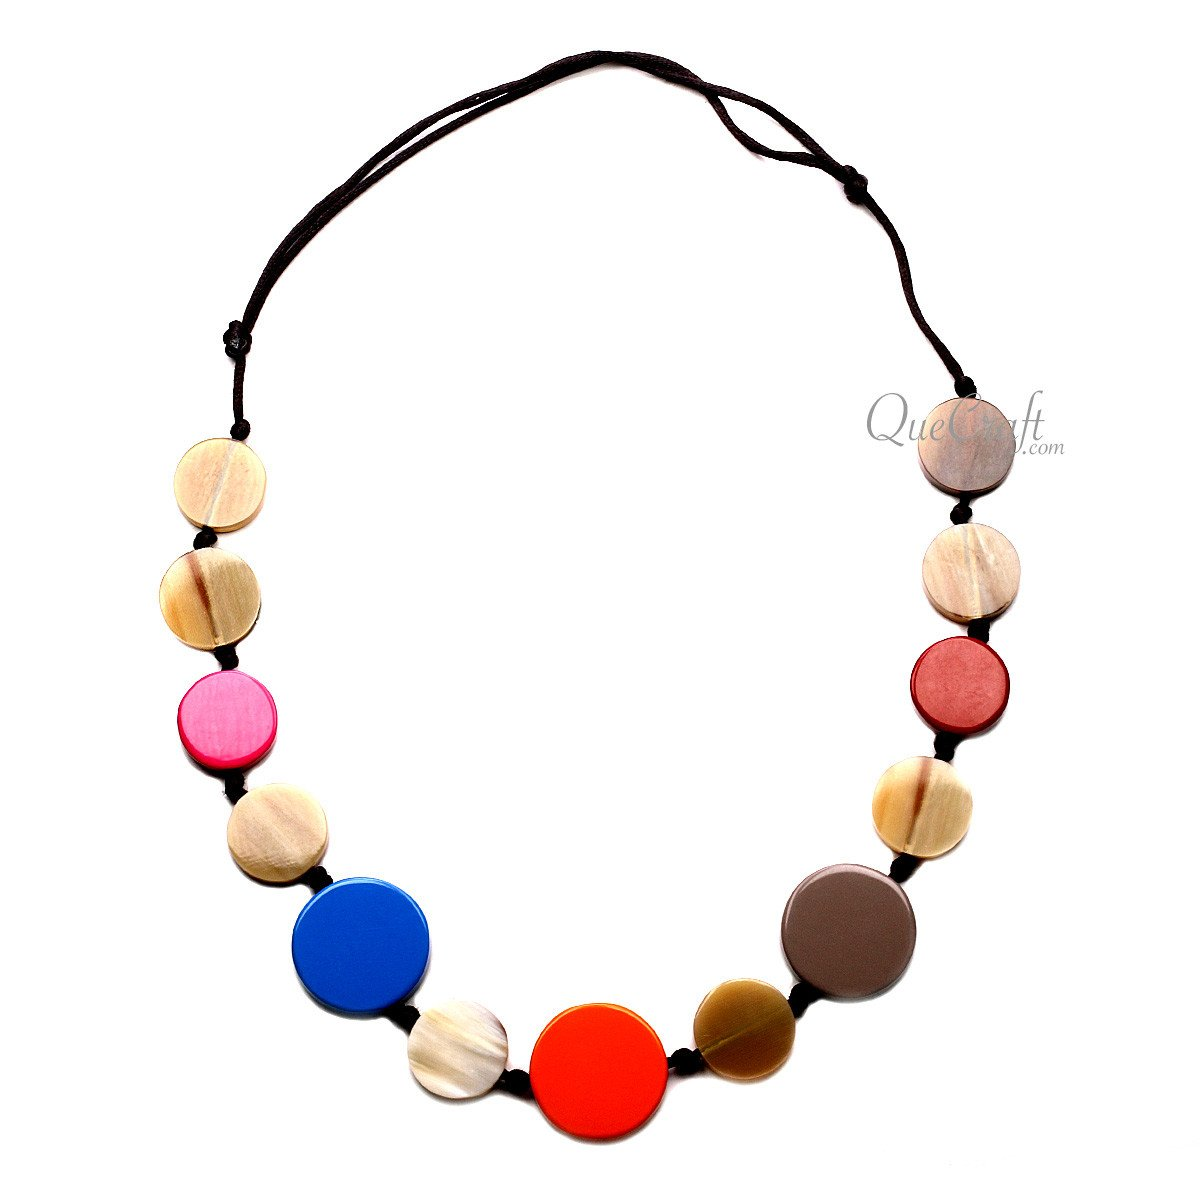 Horn & Lacquer String Necklace #12698 - HORN.JEWELRY by QueCraft